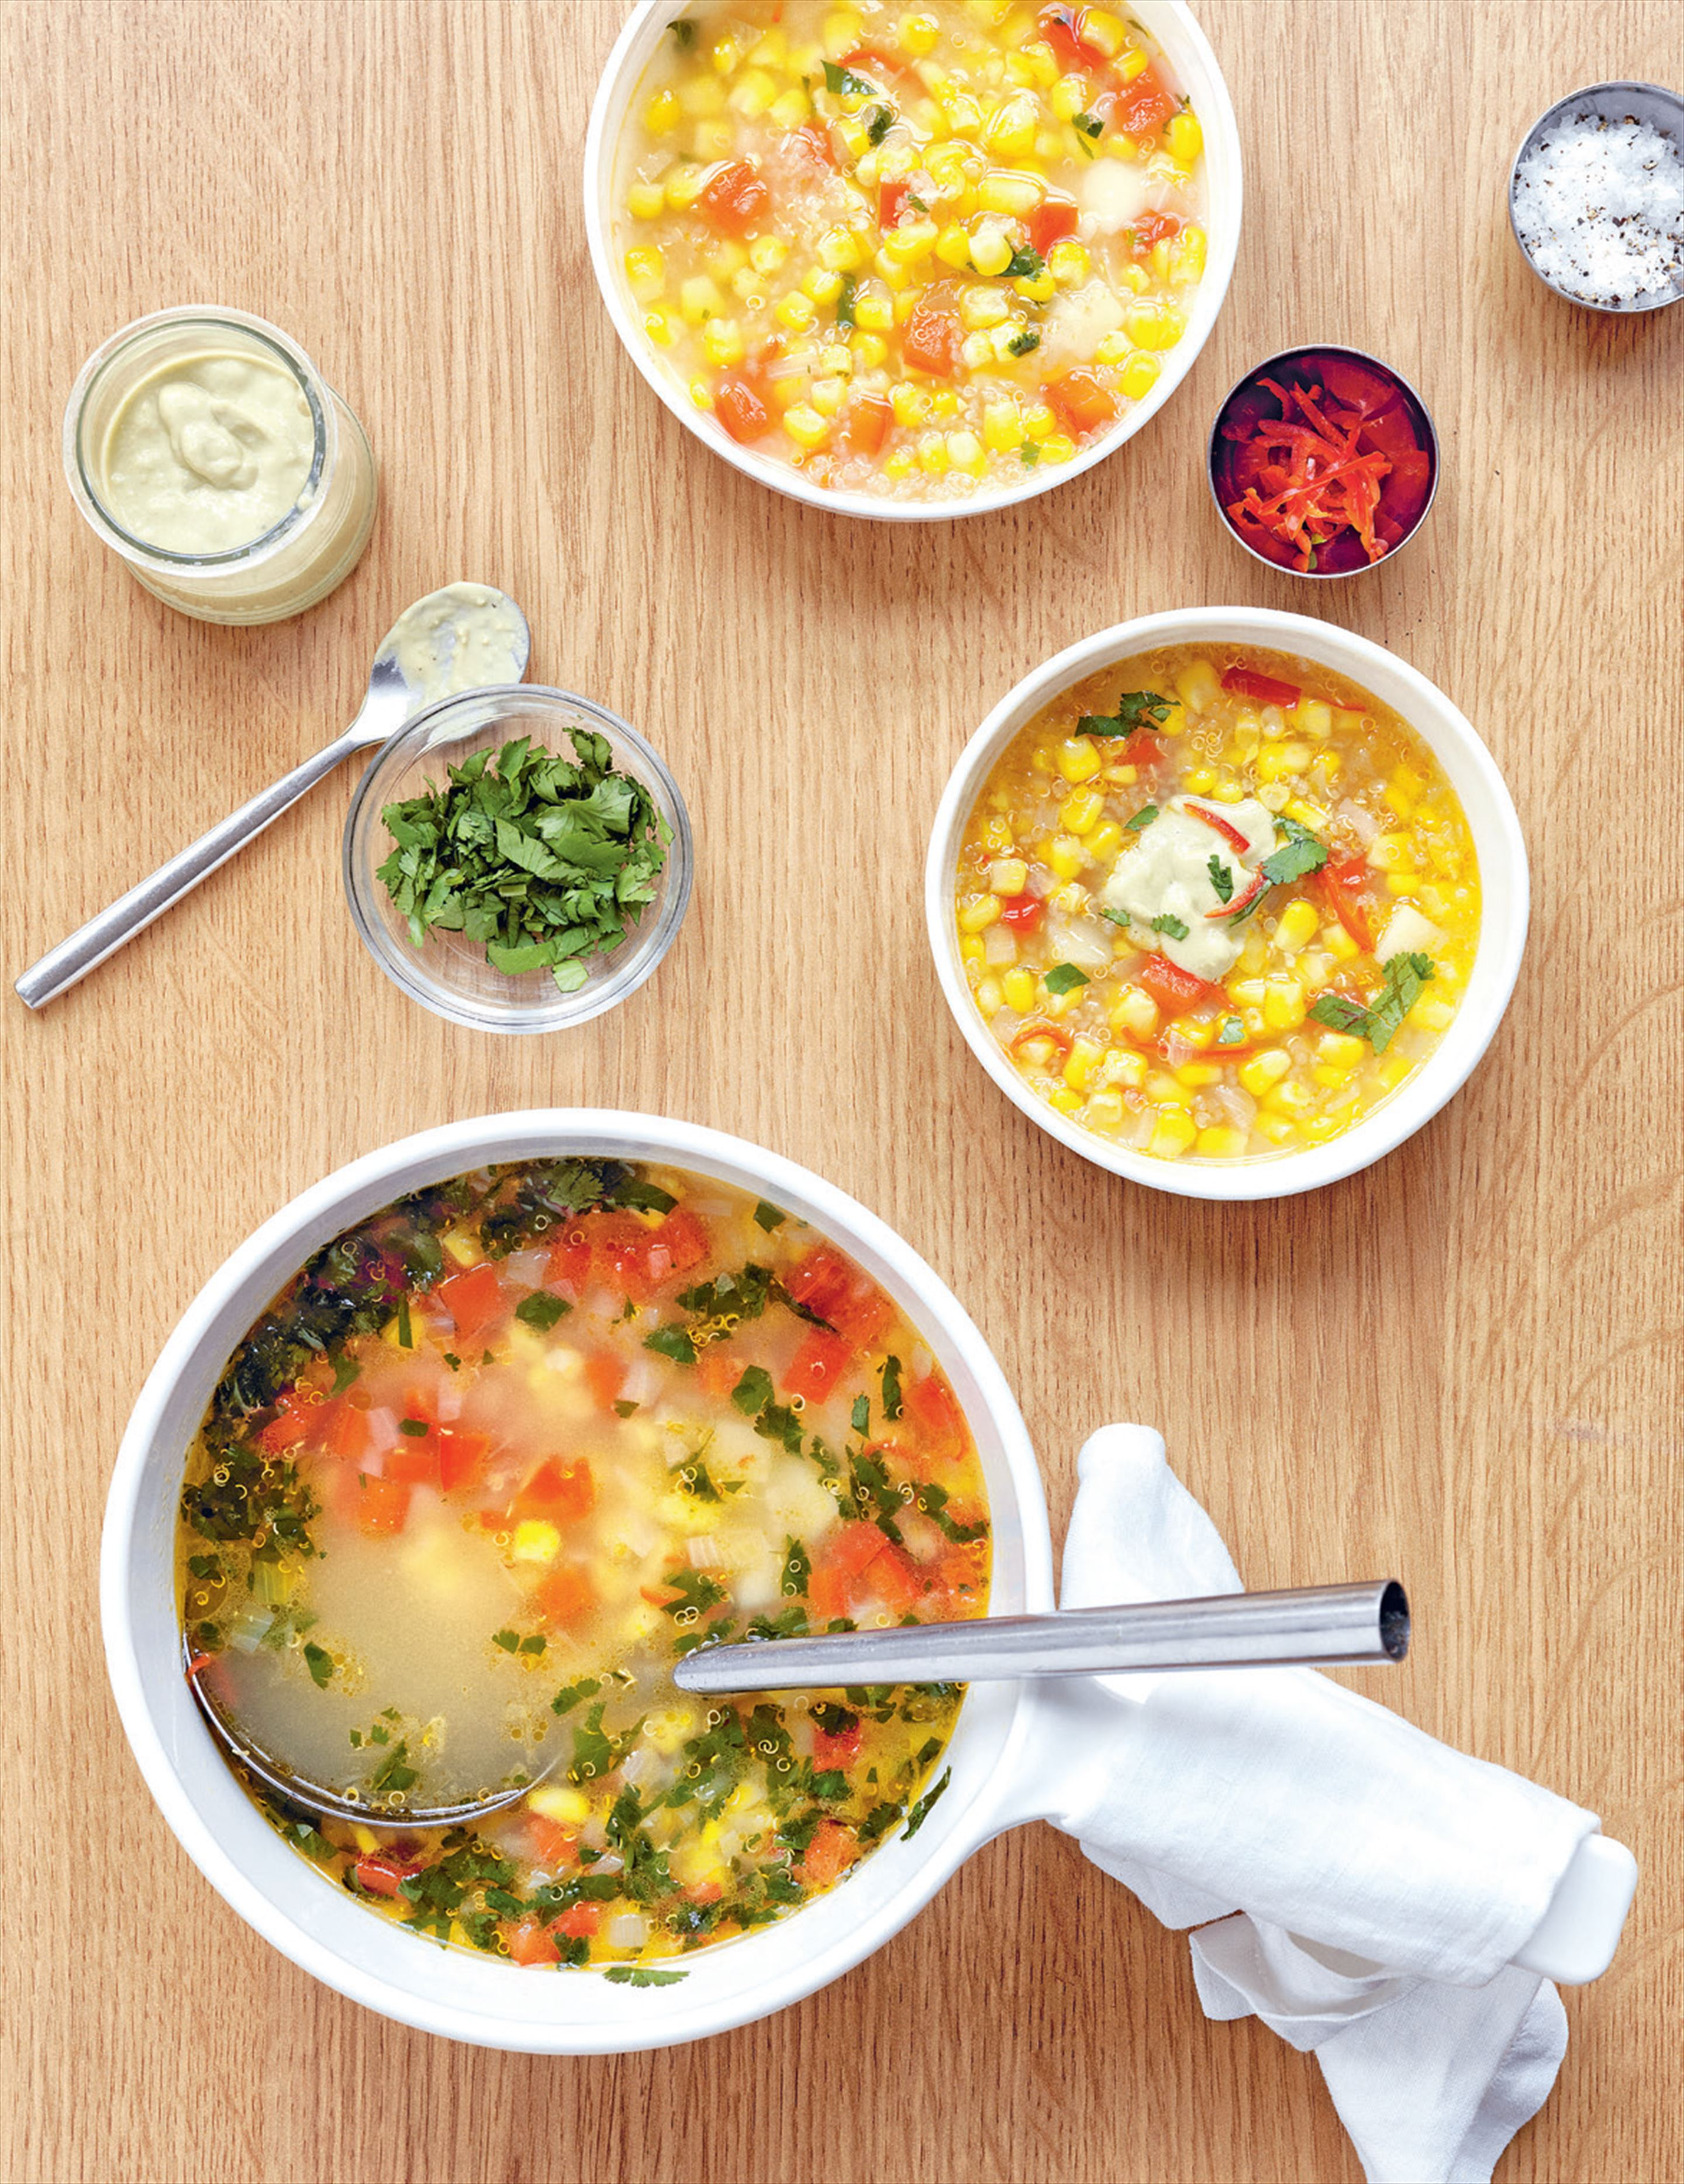 Corn, quinoa & capsicum soup with avocado cream